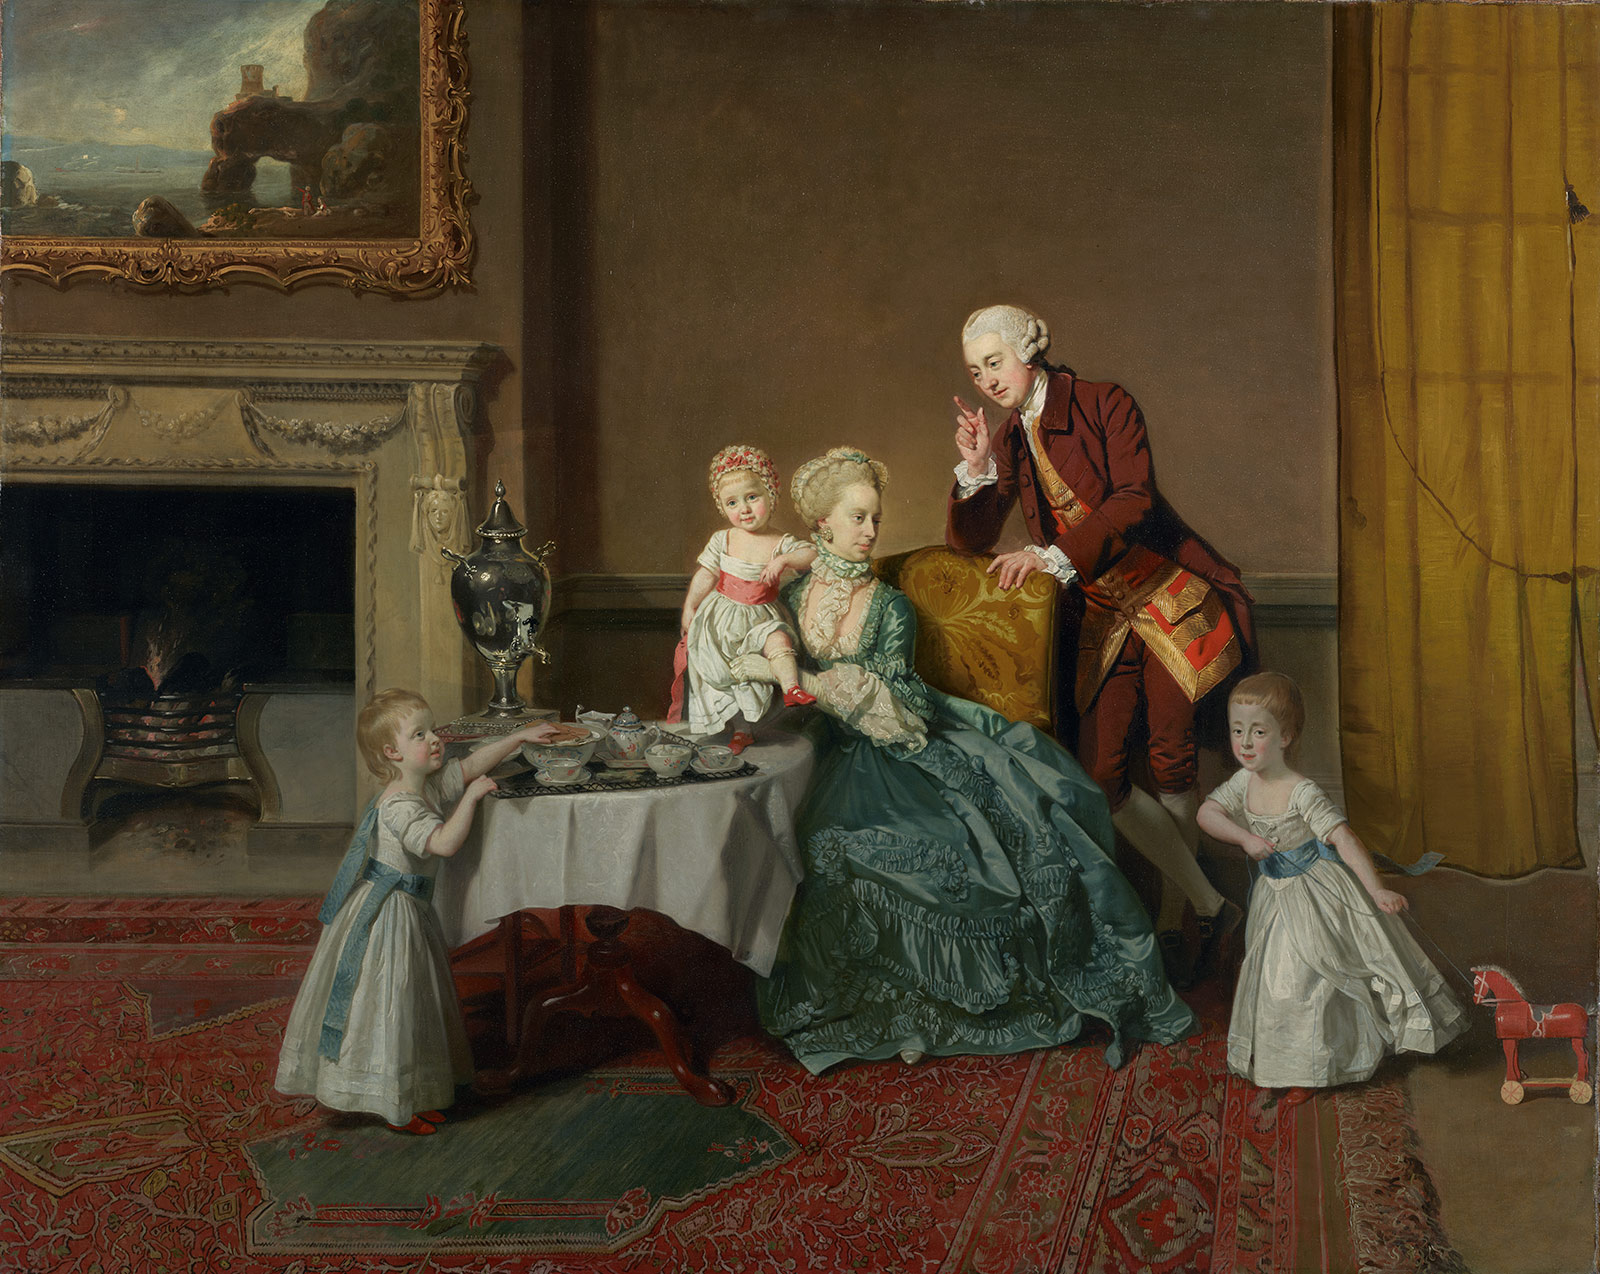 A woman in a blue-green dress sits in a chair, holding a young girl, behind a small table set for tea. Two more small girls stand, one reaching for something on the table, the other pulling a small toy horse. A man in a red waistcoat leans on the chair behind them all.